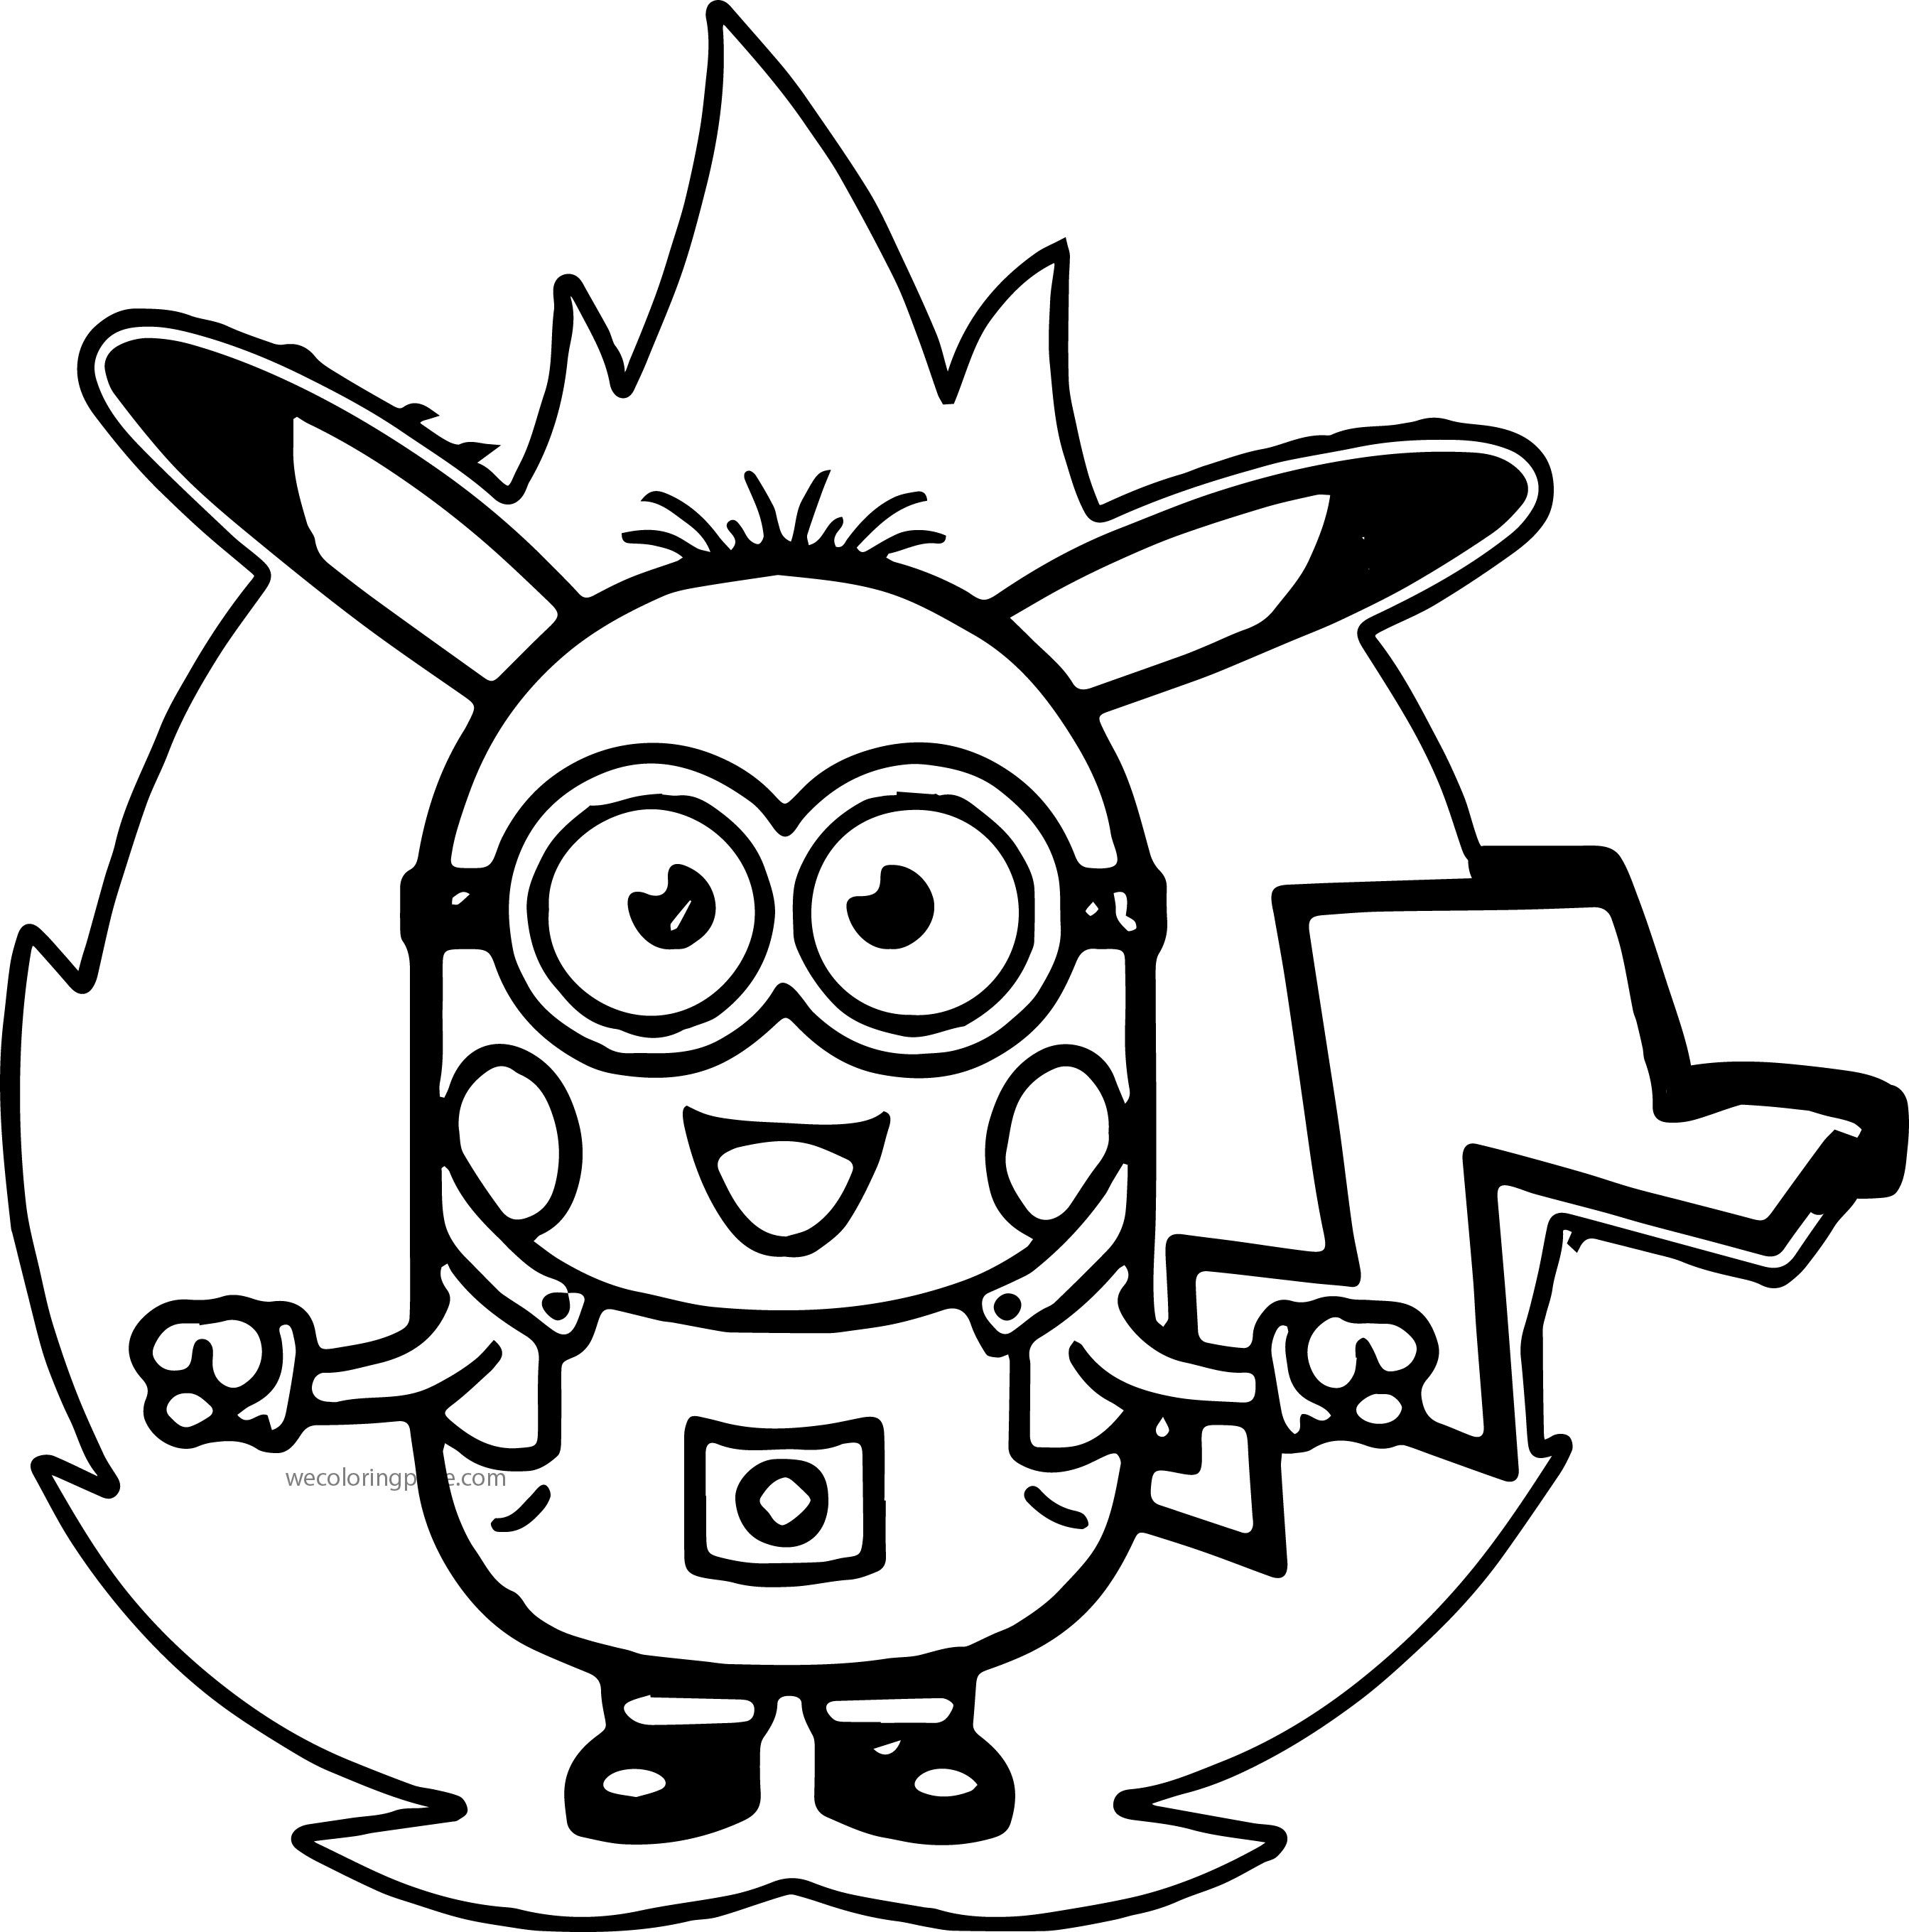 Awesome Minion Pokemon Coloring Pages Pokemon Coloring Minions